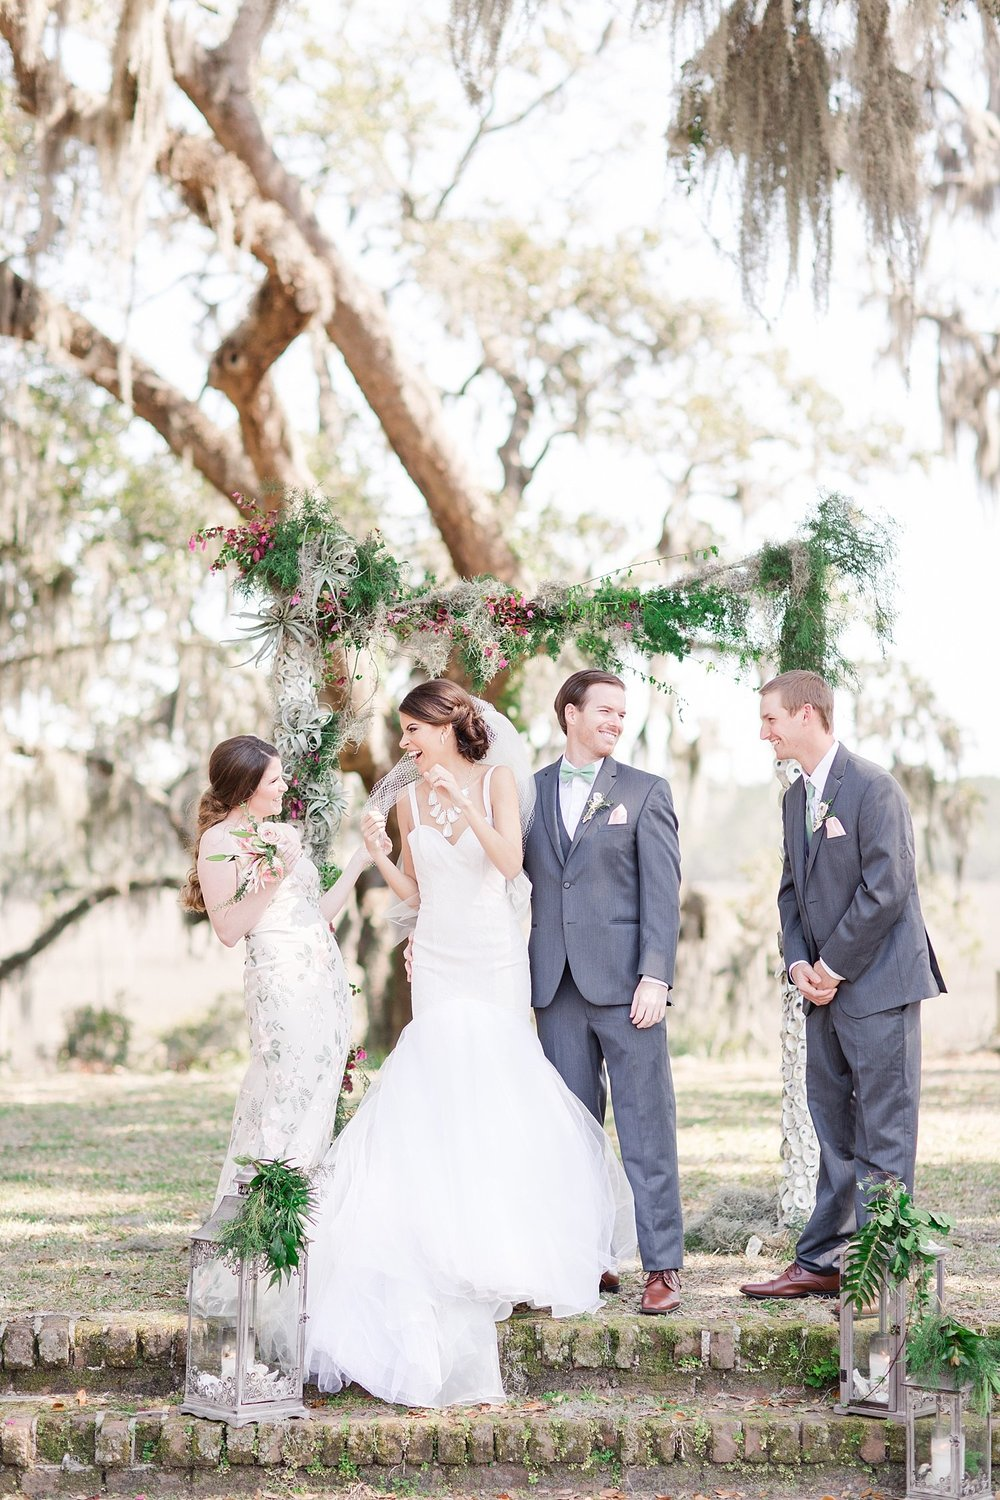 rachel-strickland-photography-katie-may-ivory-and-beau-bridal-boutique-bethesda-academy-wedding-whitfield-chapel-wedding-savannah-bridal-boutique-savannah-weddings-savannah-wedding-savannah-wedding-planner-savannah-bridal-gowns-savannah-bride-14.jpg